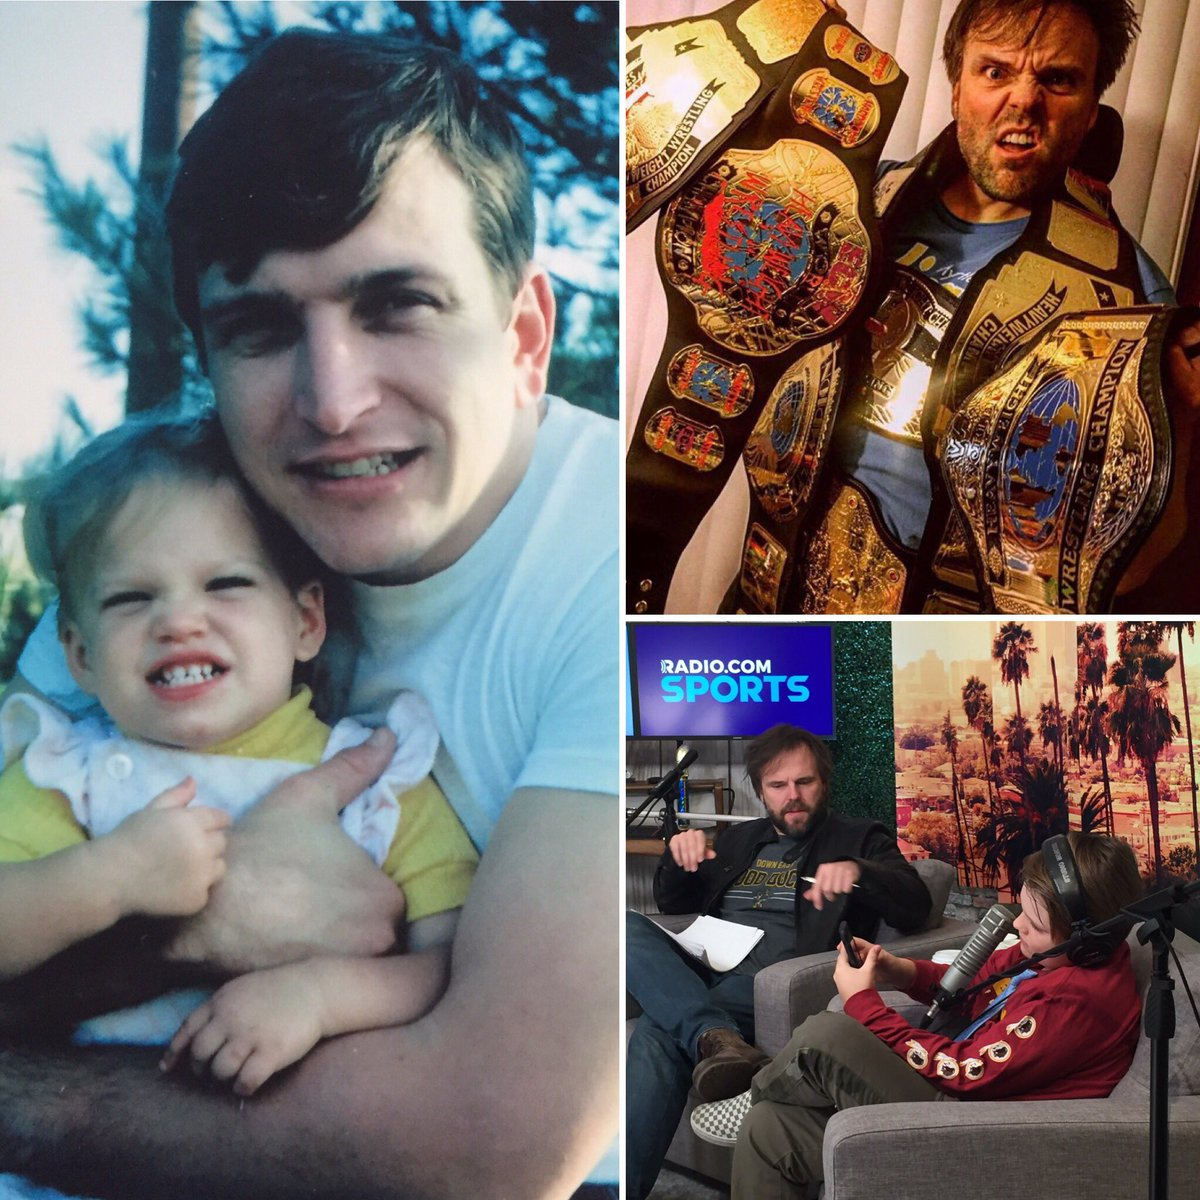 Since I already had #thebestdadintheworld it was hard to find a man who could measure up. Luckily @eddiepence was available! He has #allthebelts and kills it at #takeyourkidtoworkday. #happyfathersday2020 #eddiots @podcastramble1 @swingsandmrs #garmy #traceysellsla https://t.co/1ea4tXTd1A